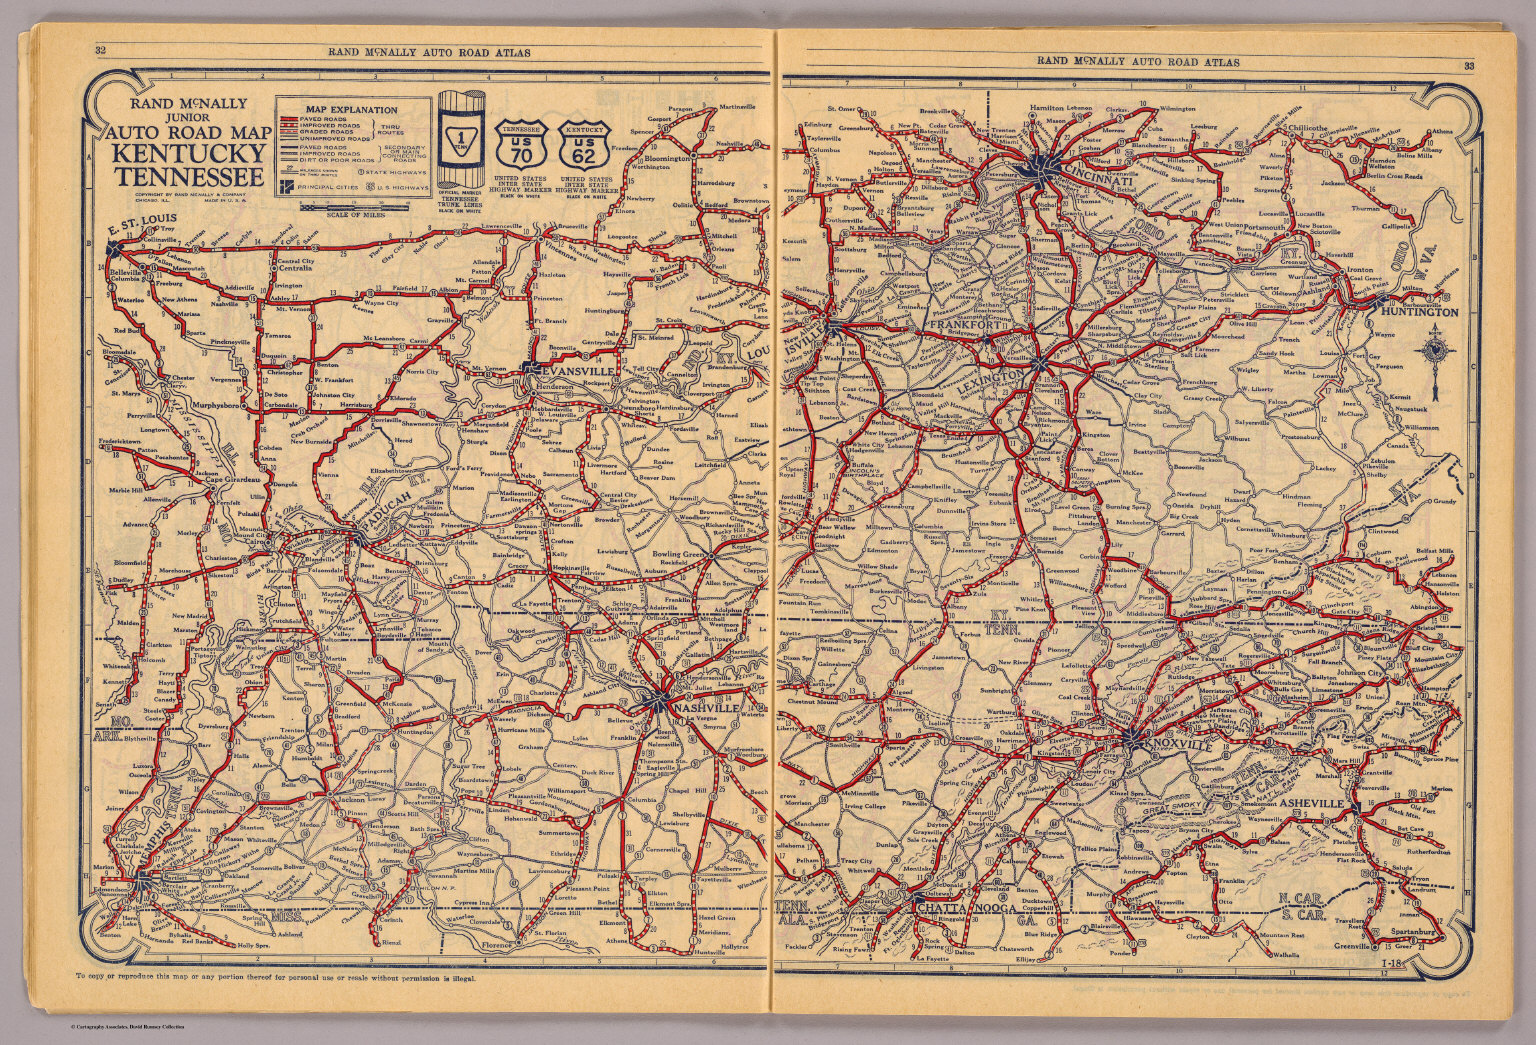 Kentucky, Tennessee. - David Rumsey Historical Map Collection on st. louis kentucky map, sharp kentucky map, ky hwy map, rand mcnally home, lexington kentucky map, mapquest kentucky map,